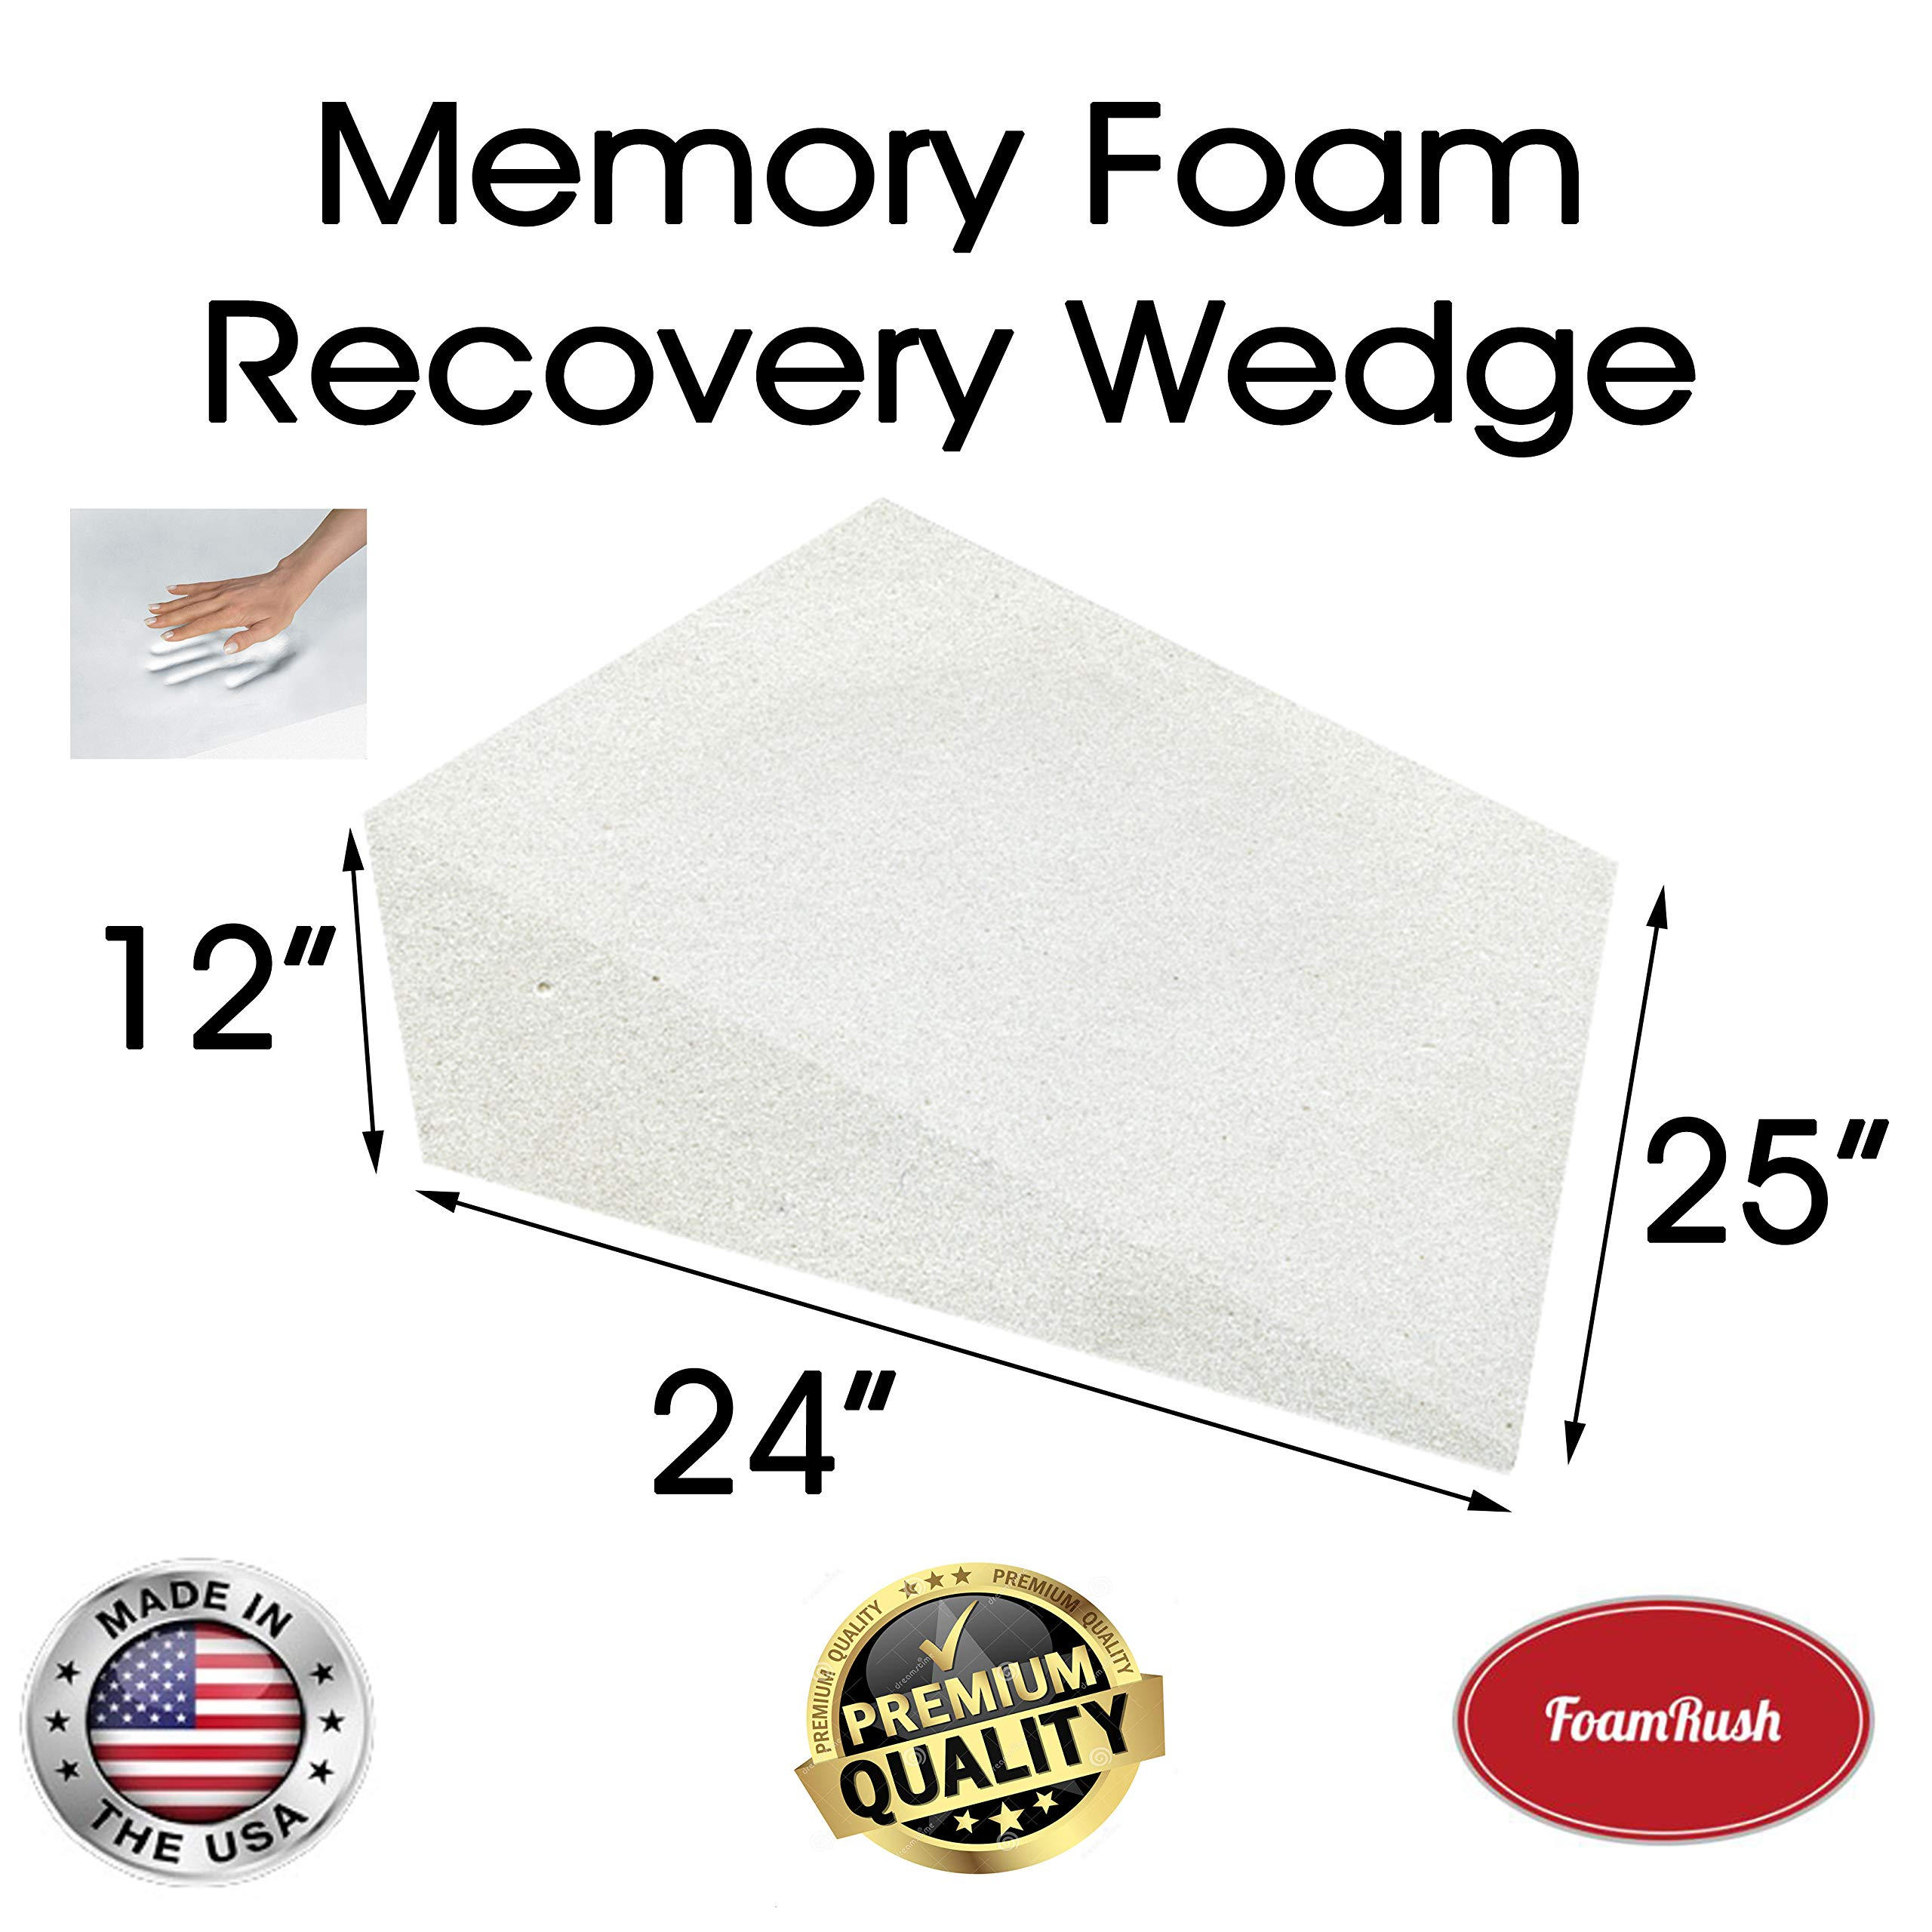 FoamRush 12'' H x 24'' L x 25'' W Premium Quality Therapeautic Memory Foam Bed Wedge Cushion Replacement Best for Sleeping, Reading, Rest or Elevation (Relives Acid Reflux, Snoring & Back Pain) by FoamRush